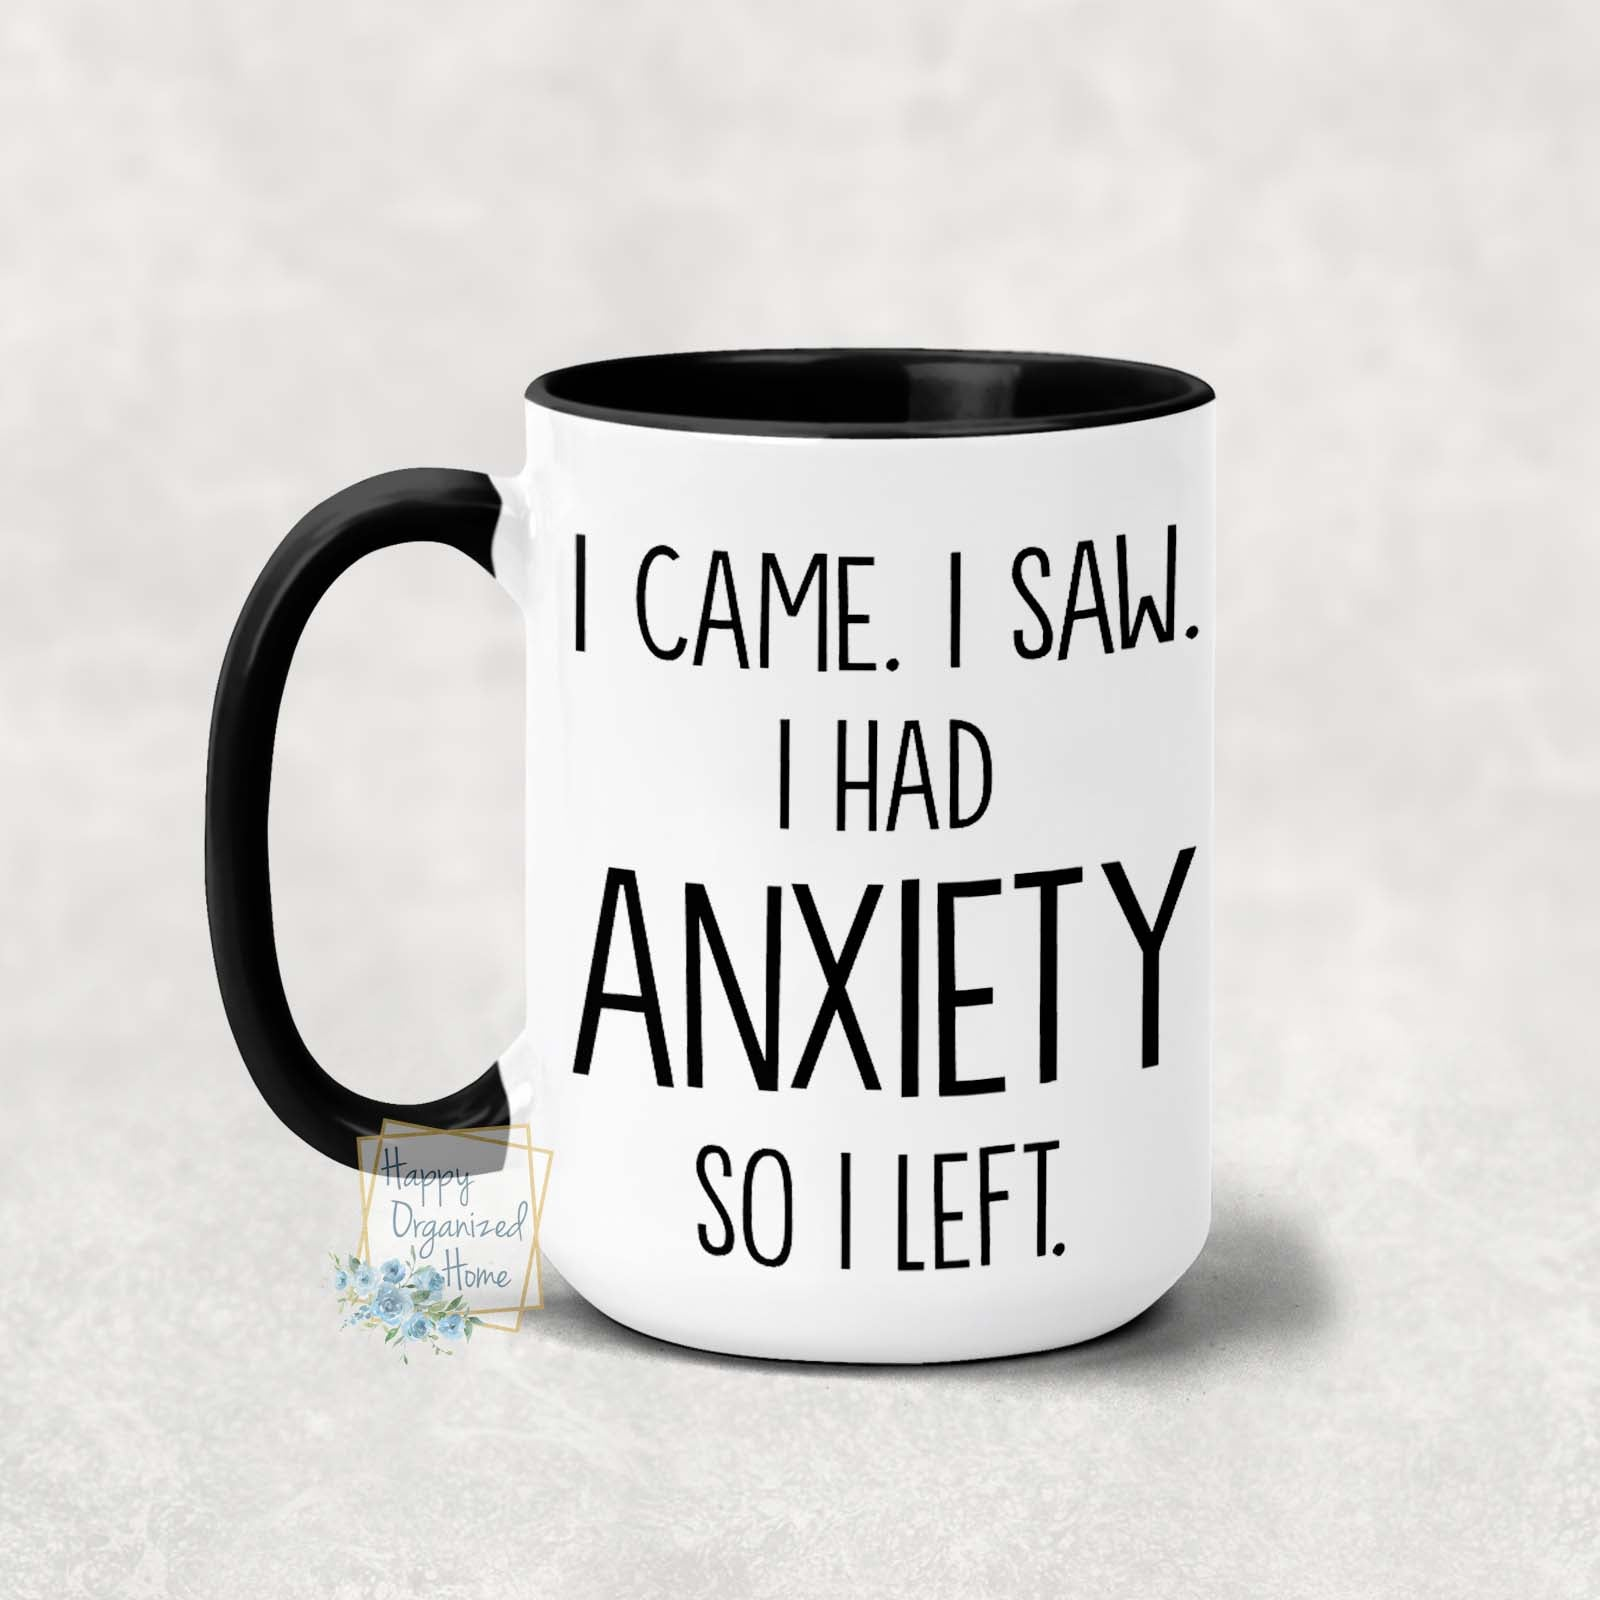 I Came, I Saw, I had anxiety so I left - Coffee Tea Mug